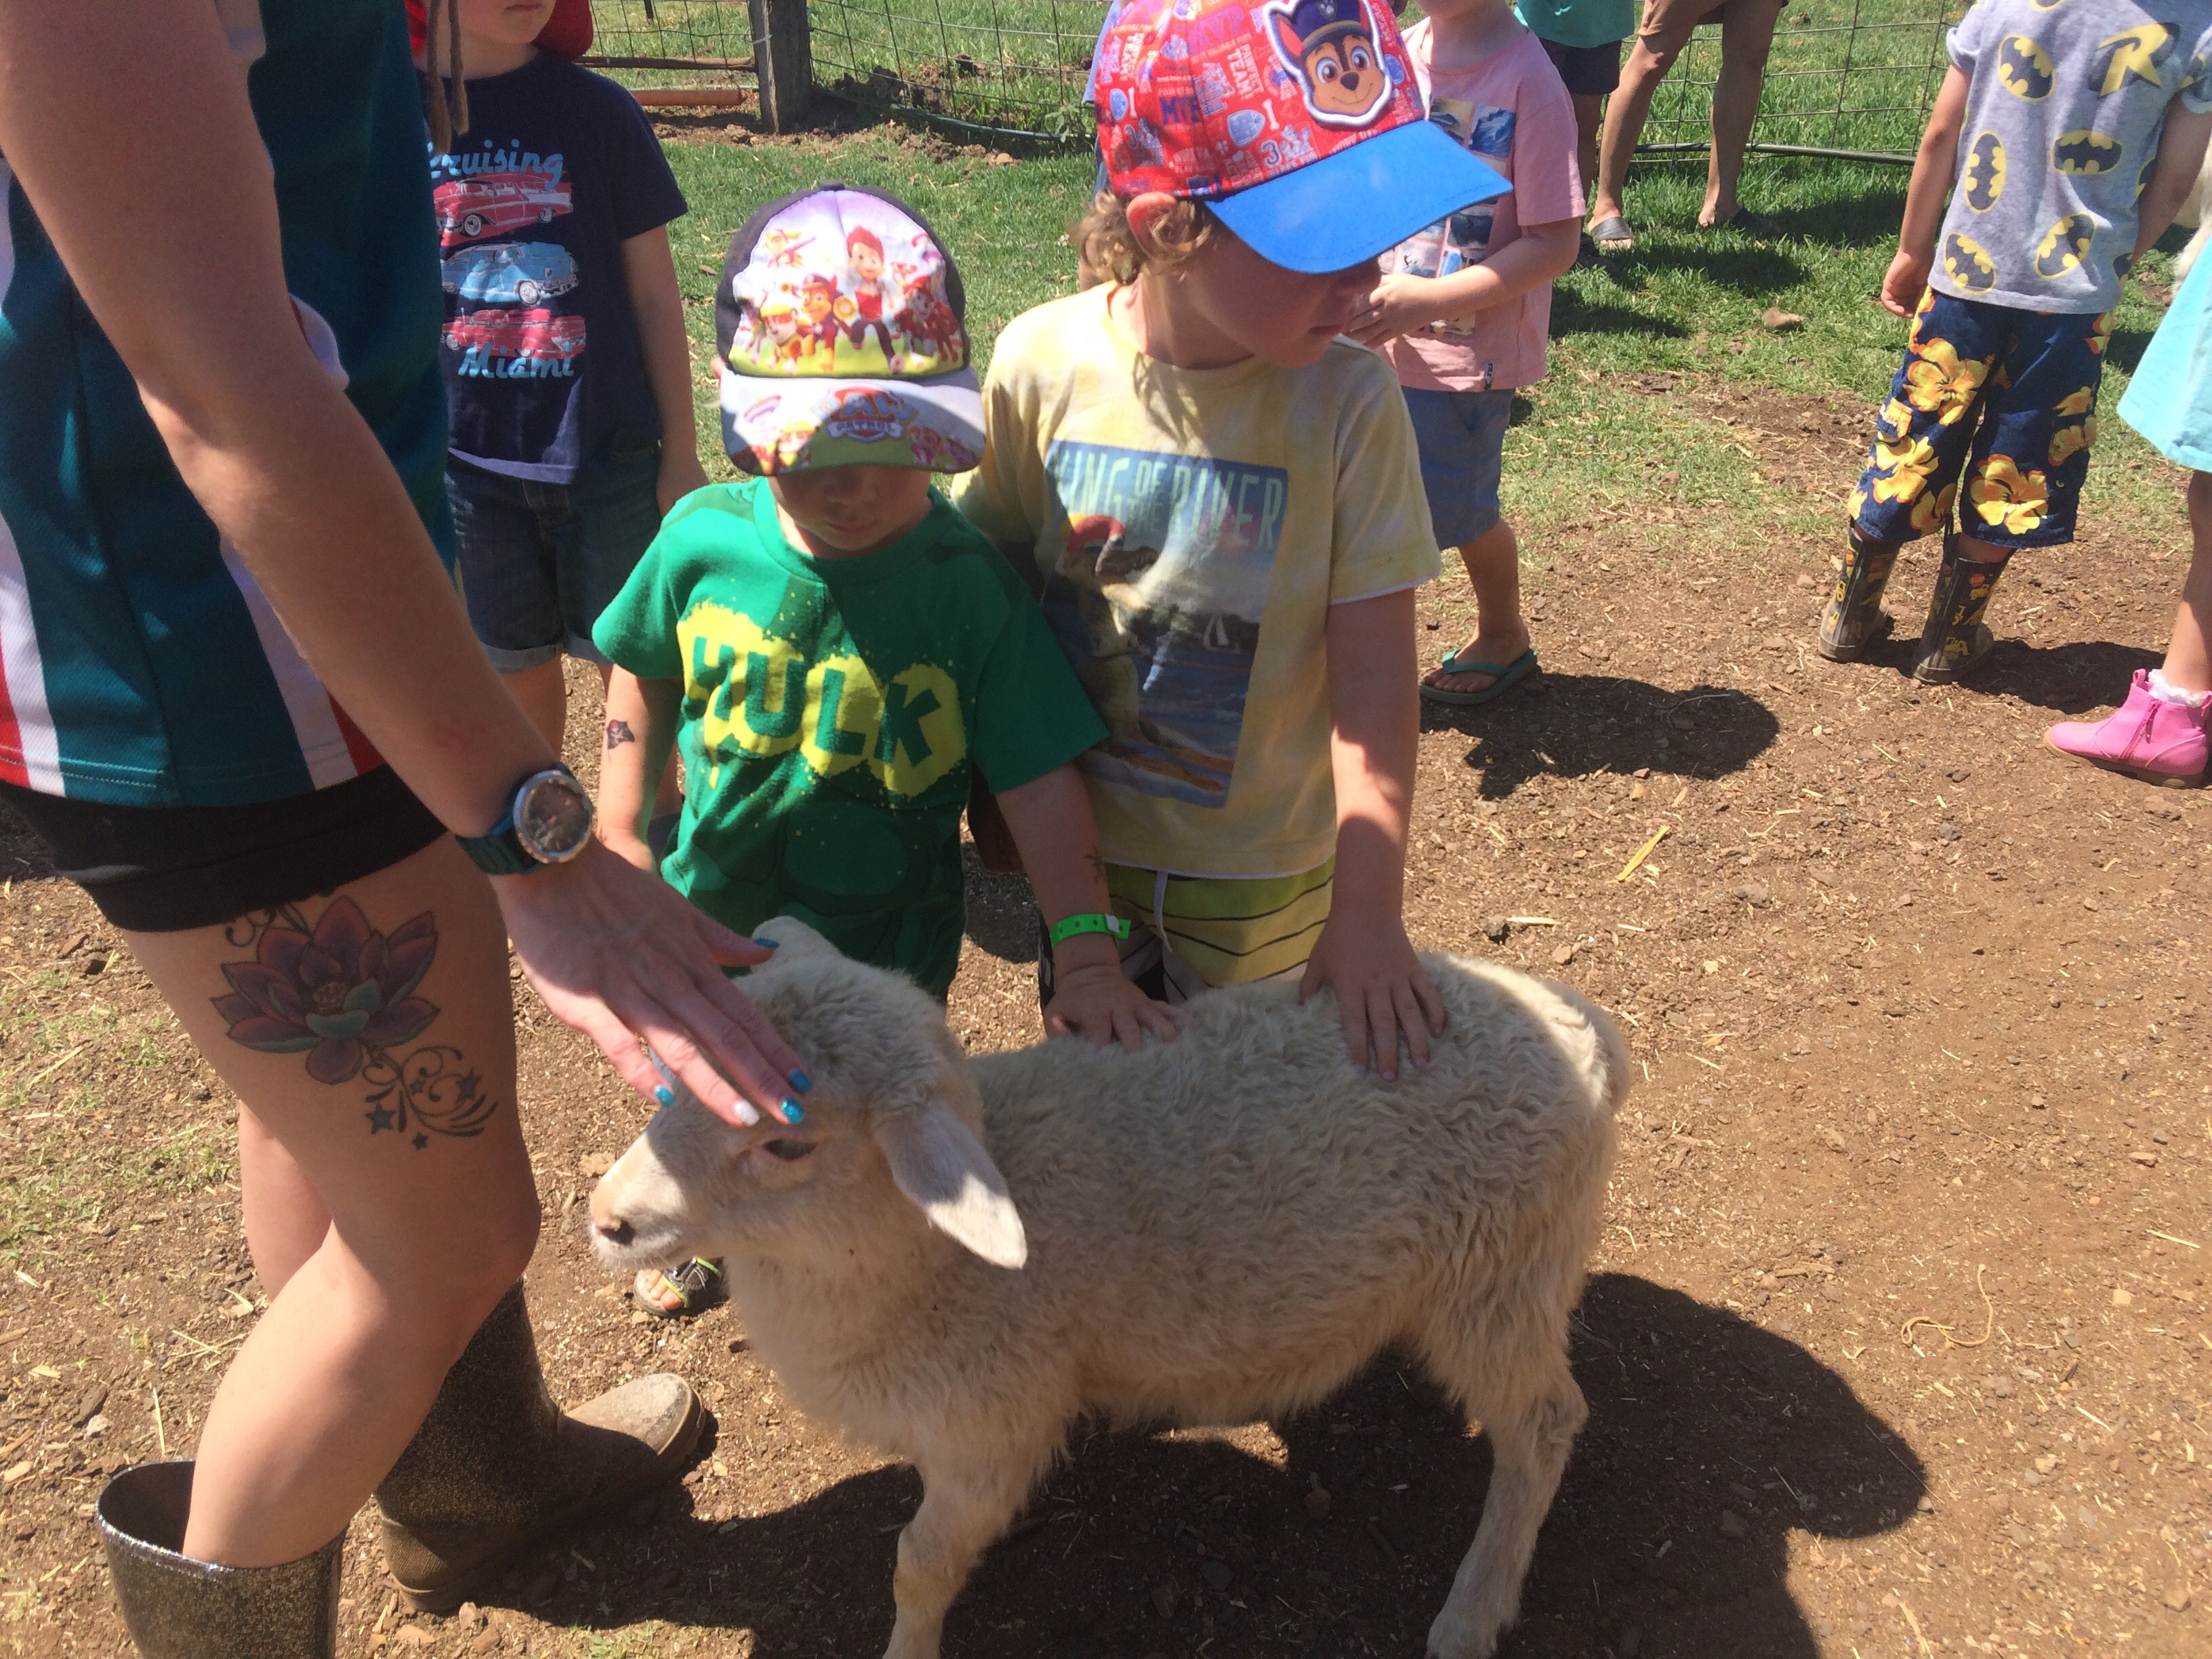 Meeting a baby lamb at Maleny Dairies